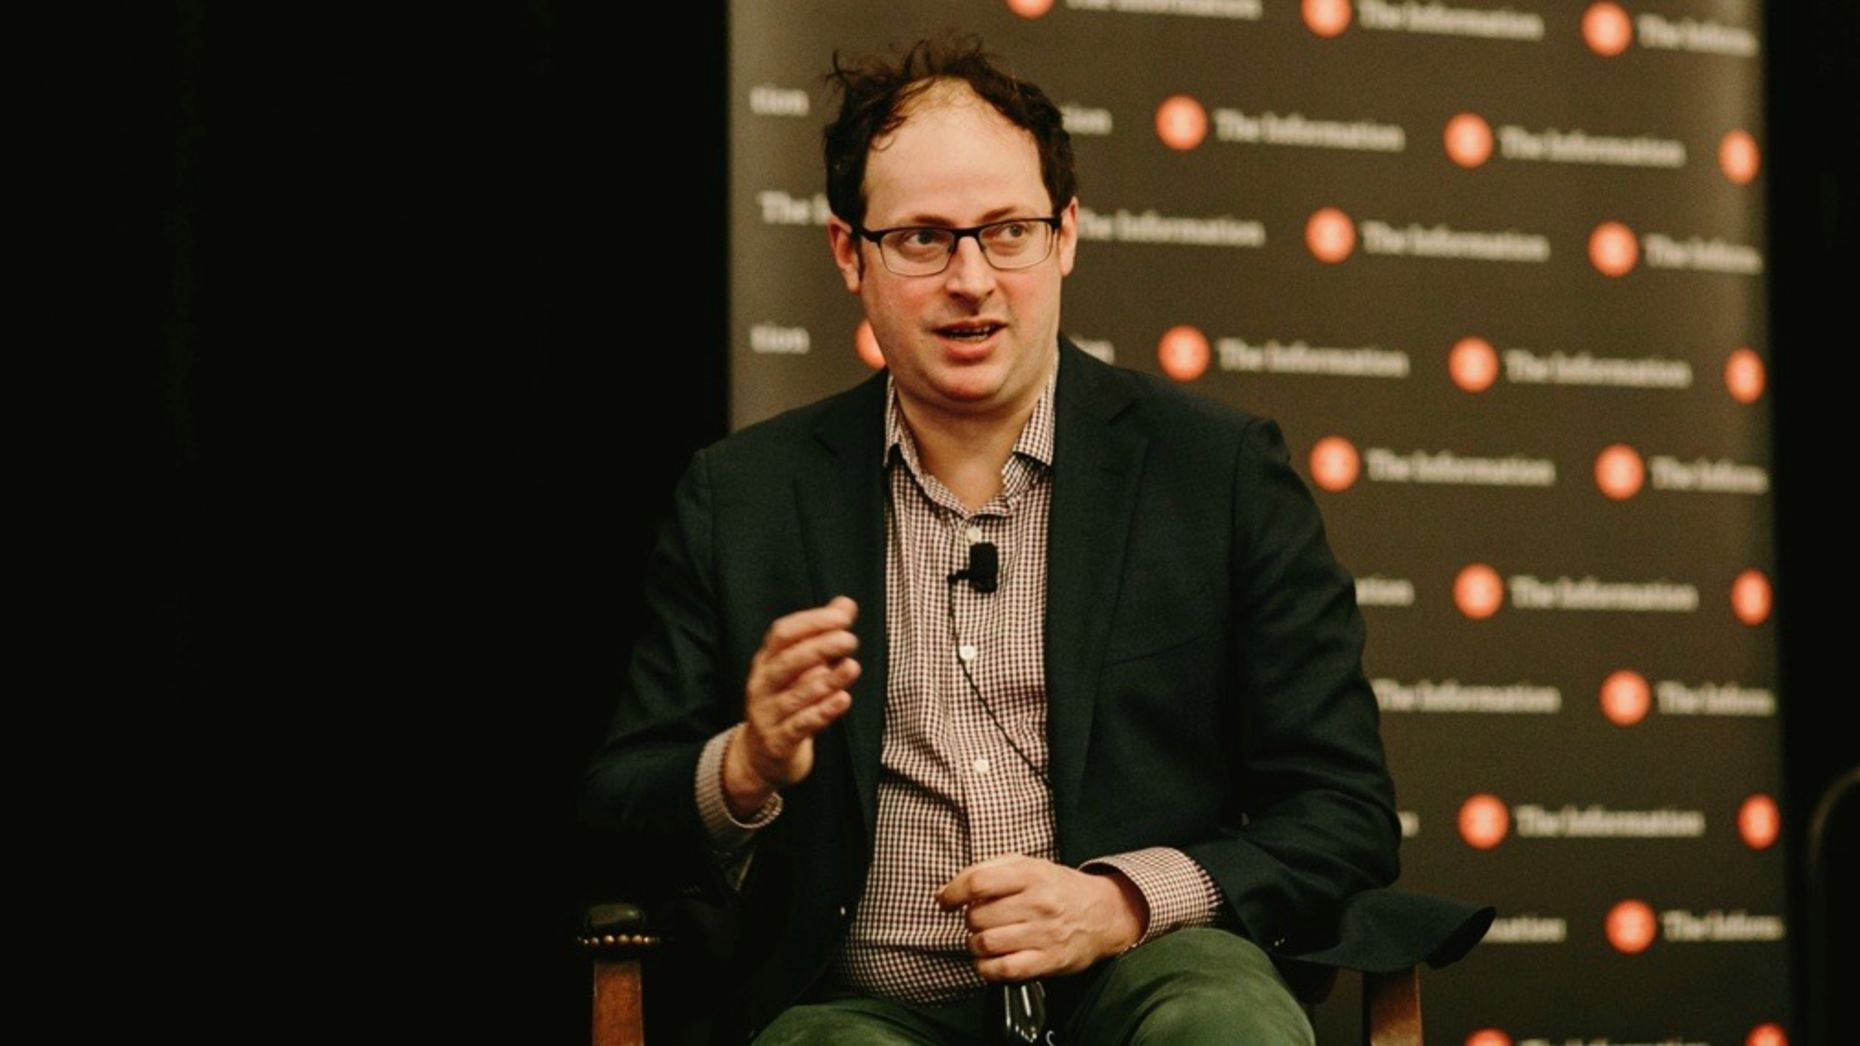 FiveThirtyEight founder Nate Silver. Photo by Karen Obrist